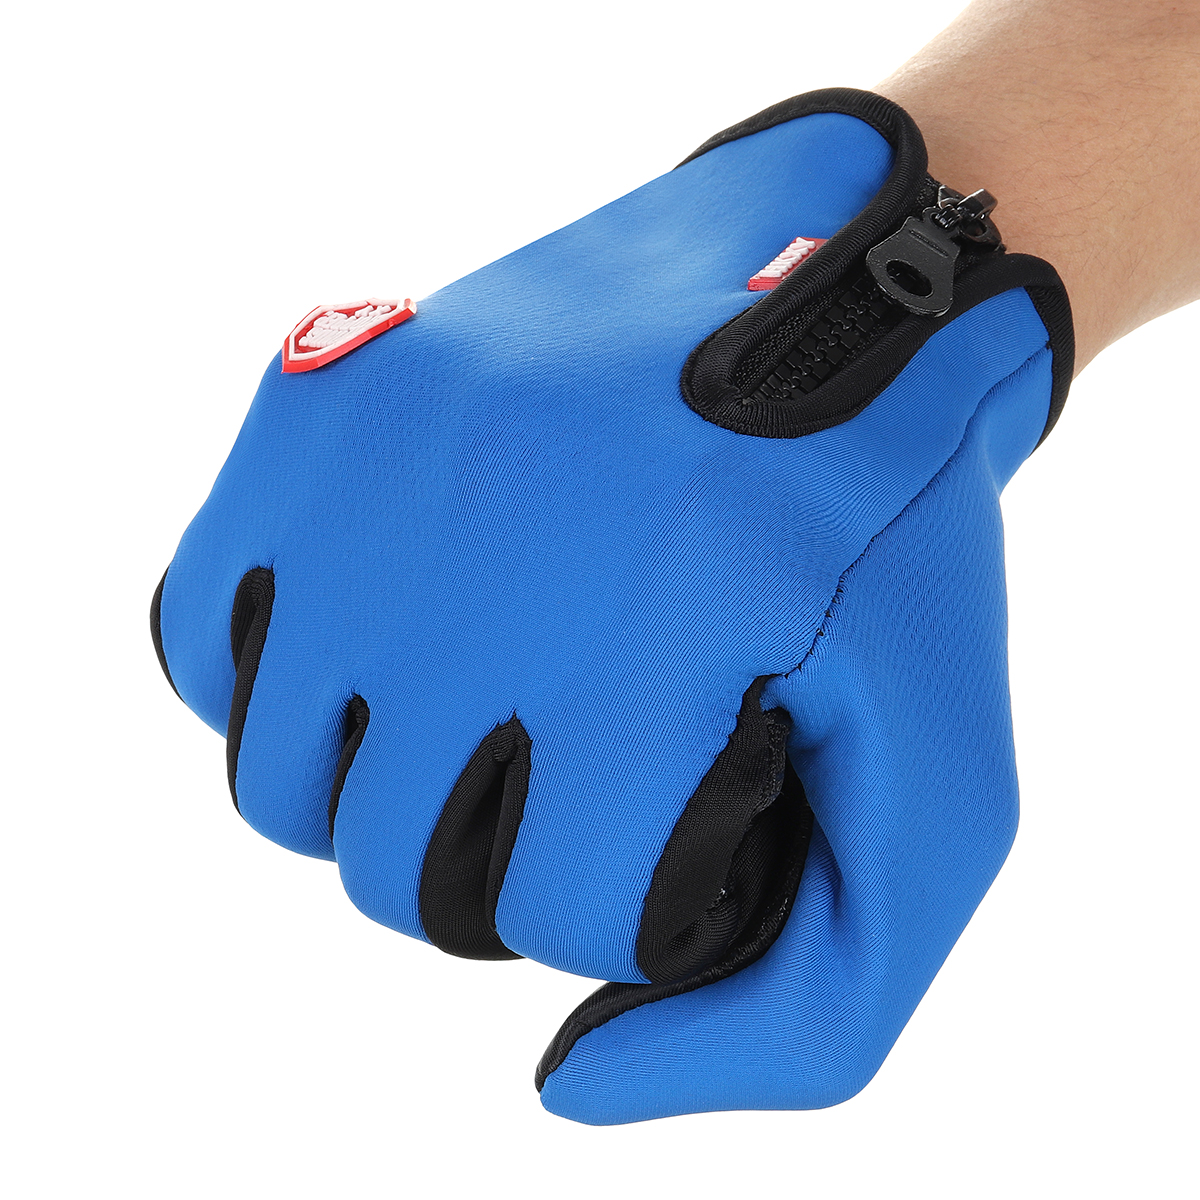 Winter Waterproof Thermal Gloves Touch Screen Windproof Warm Driving Motorcycle Riding Warm Gloves